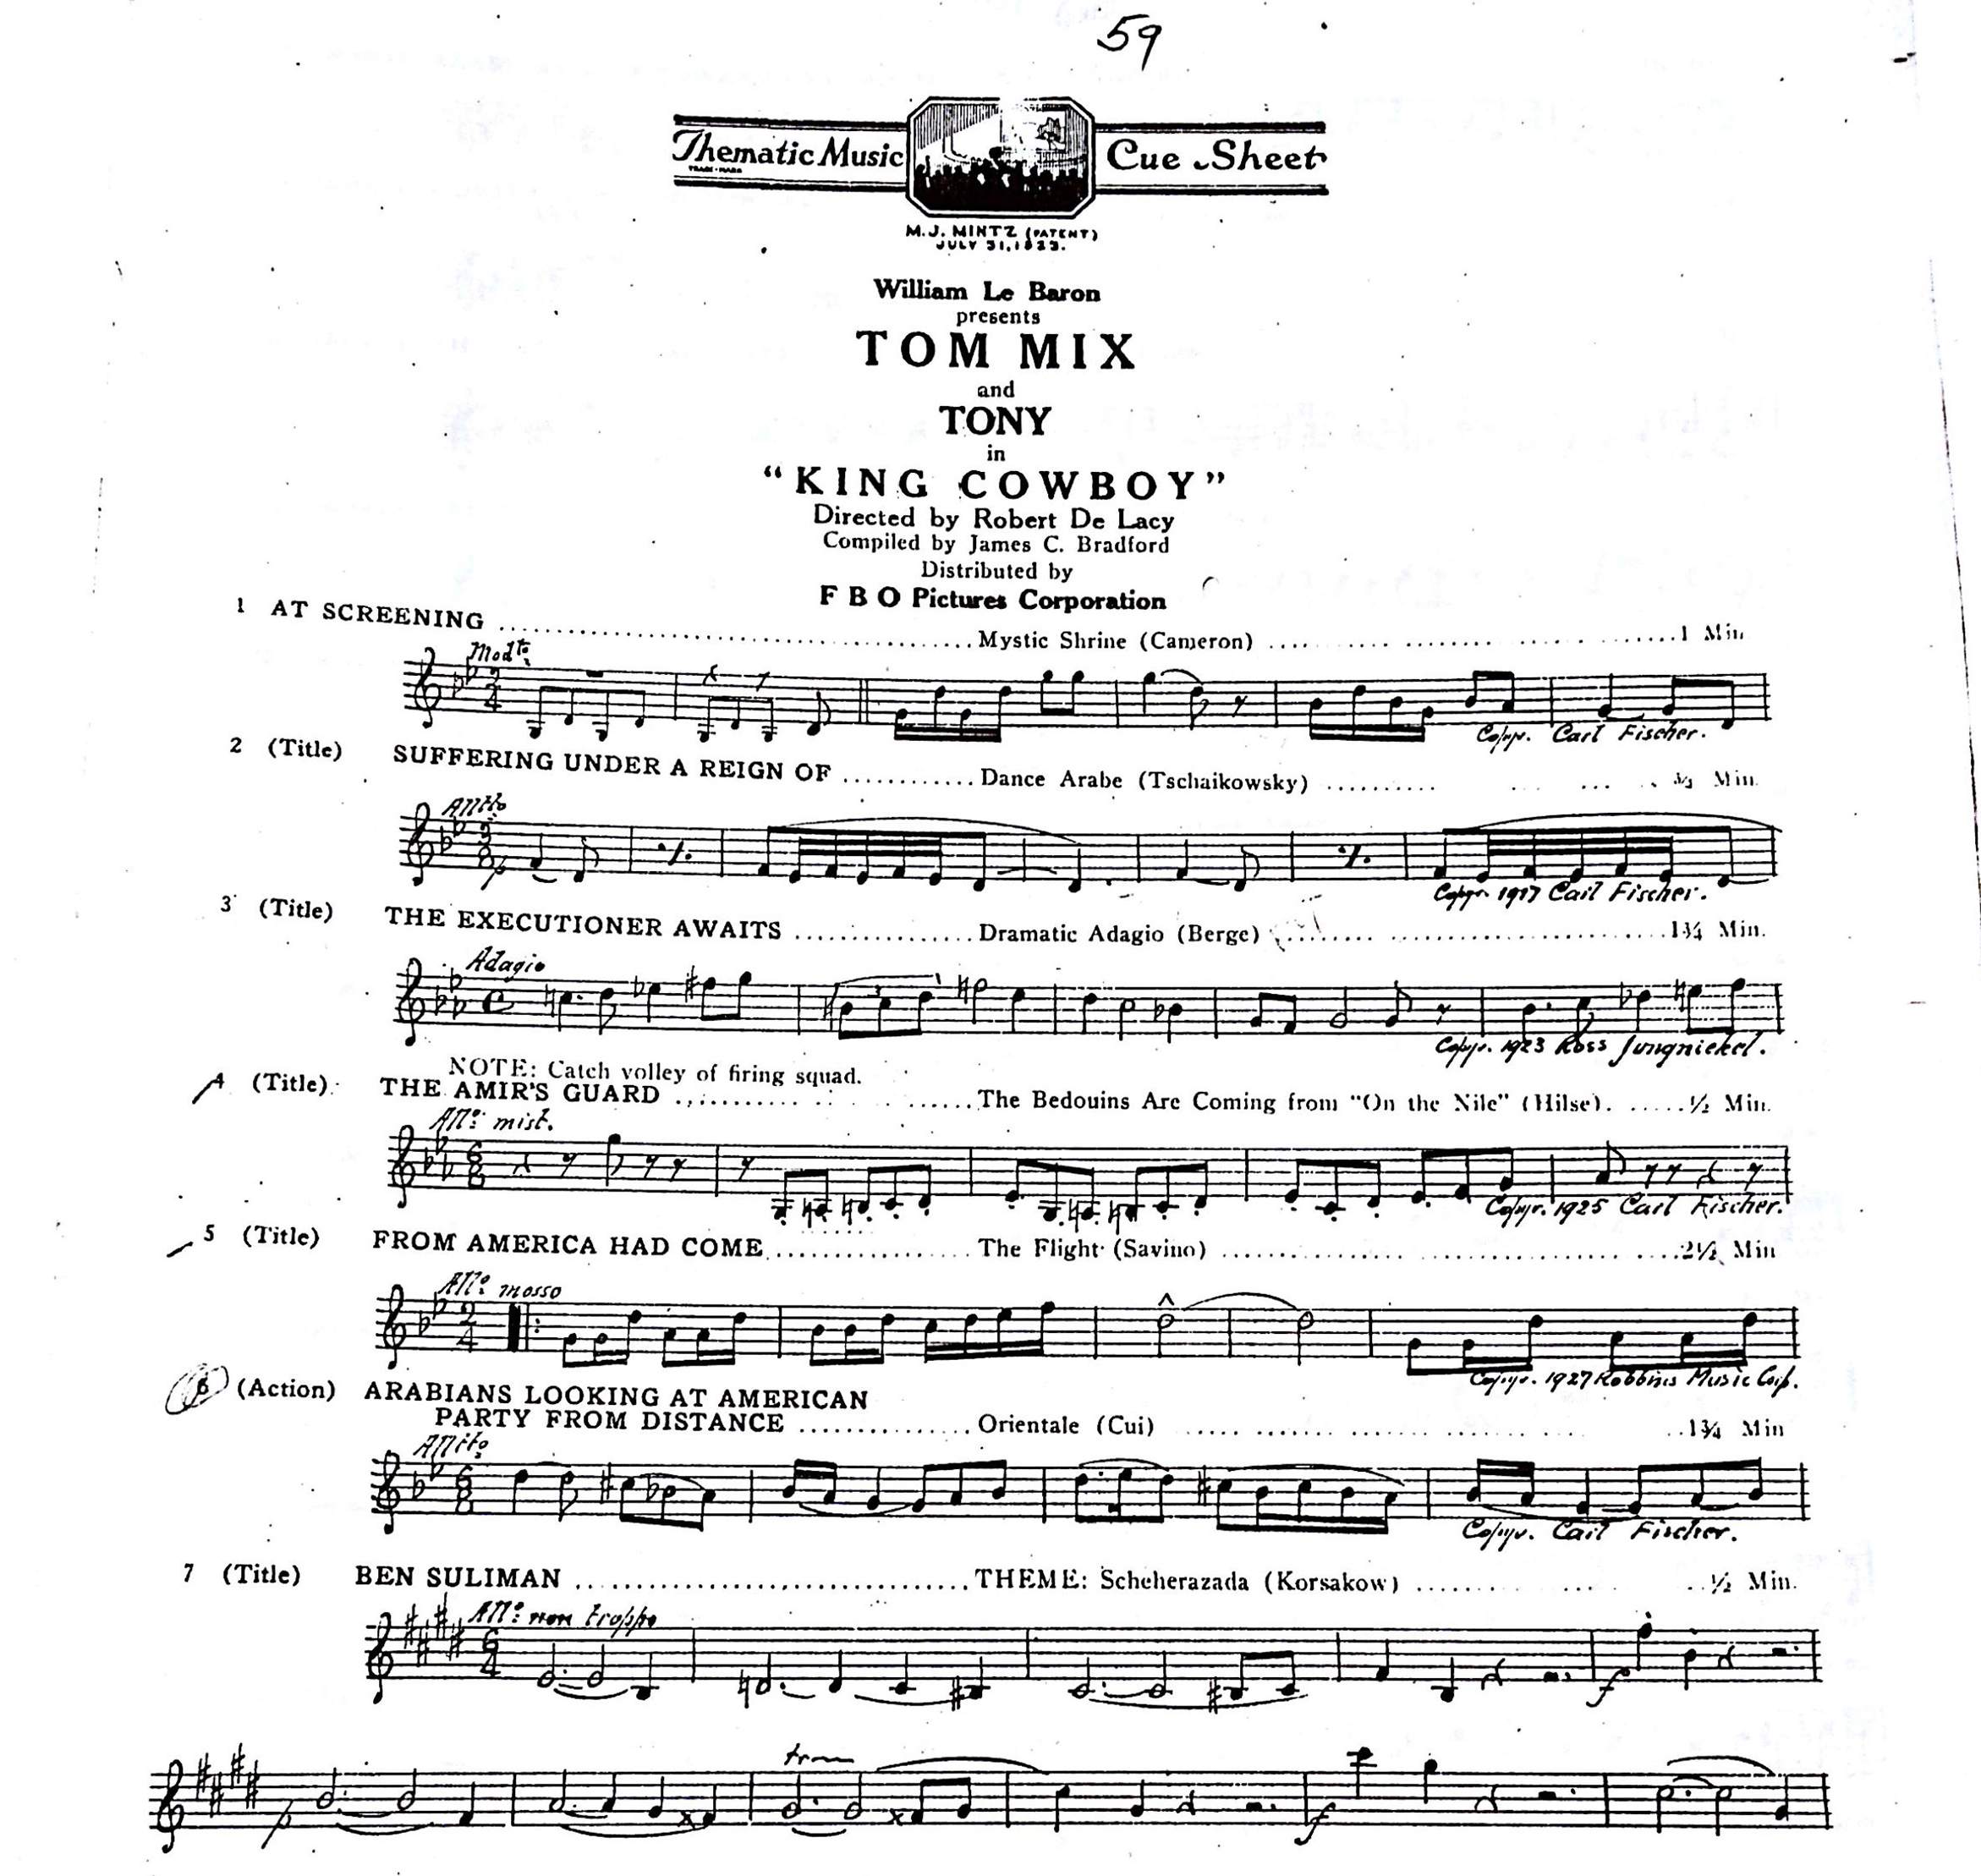 The cue sheet for King Cowboy